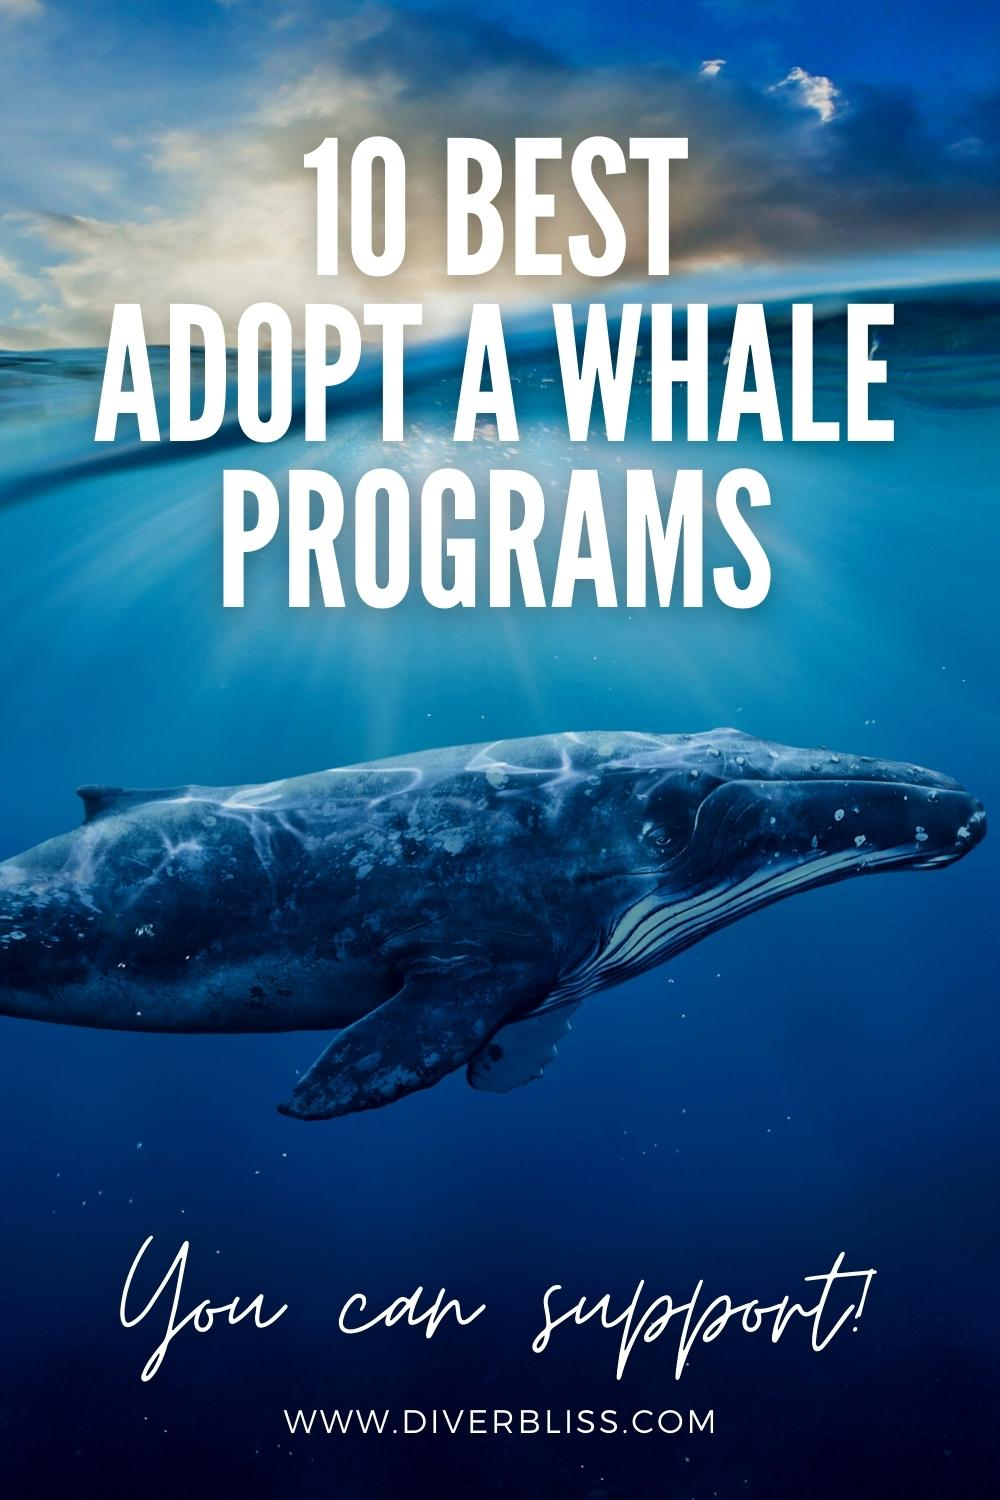 10 best adopt a whale programs